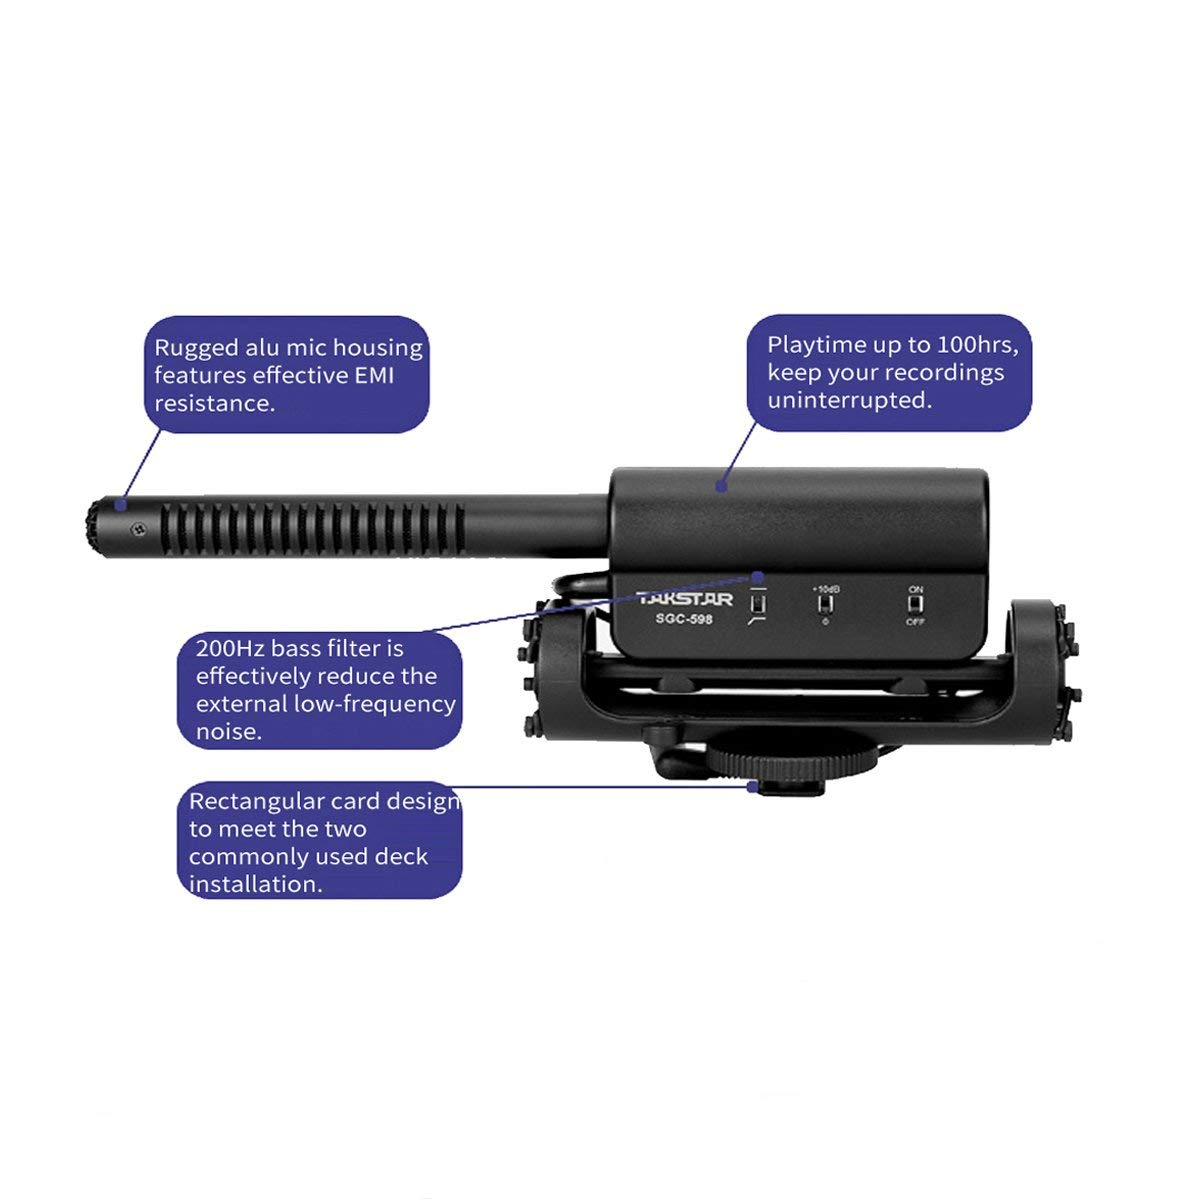 Pixel MC-50 High Definition Voice Camera Microphone Camcorder Interview Microphone Low-Noise Circuit Design Shotgun Mic for dslr Canon Nikon Panasonic Camcorder Need 3.5mm Interface